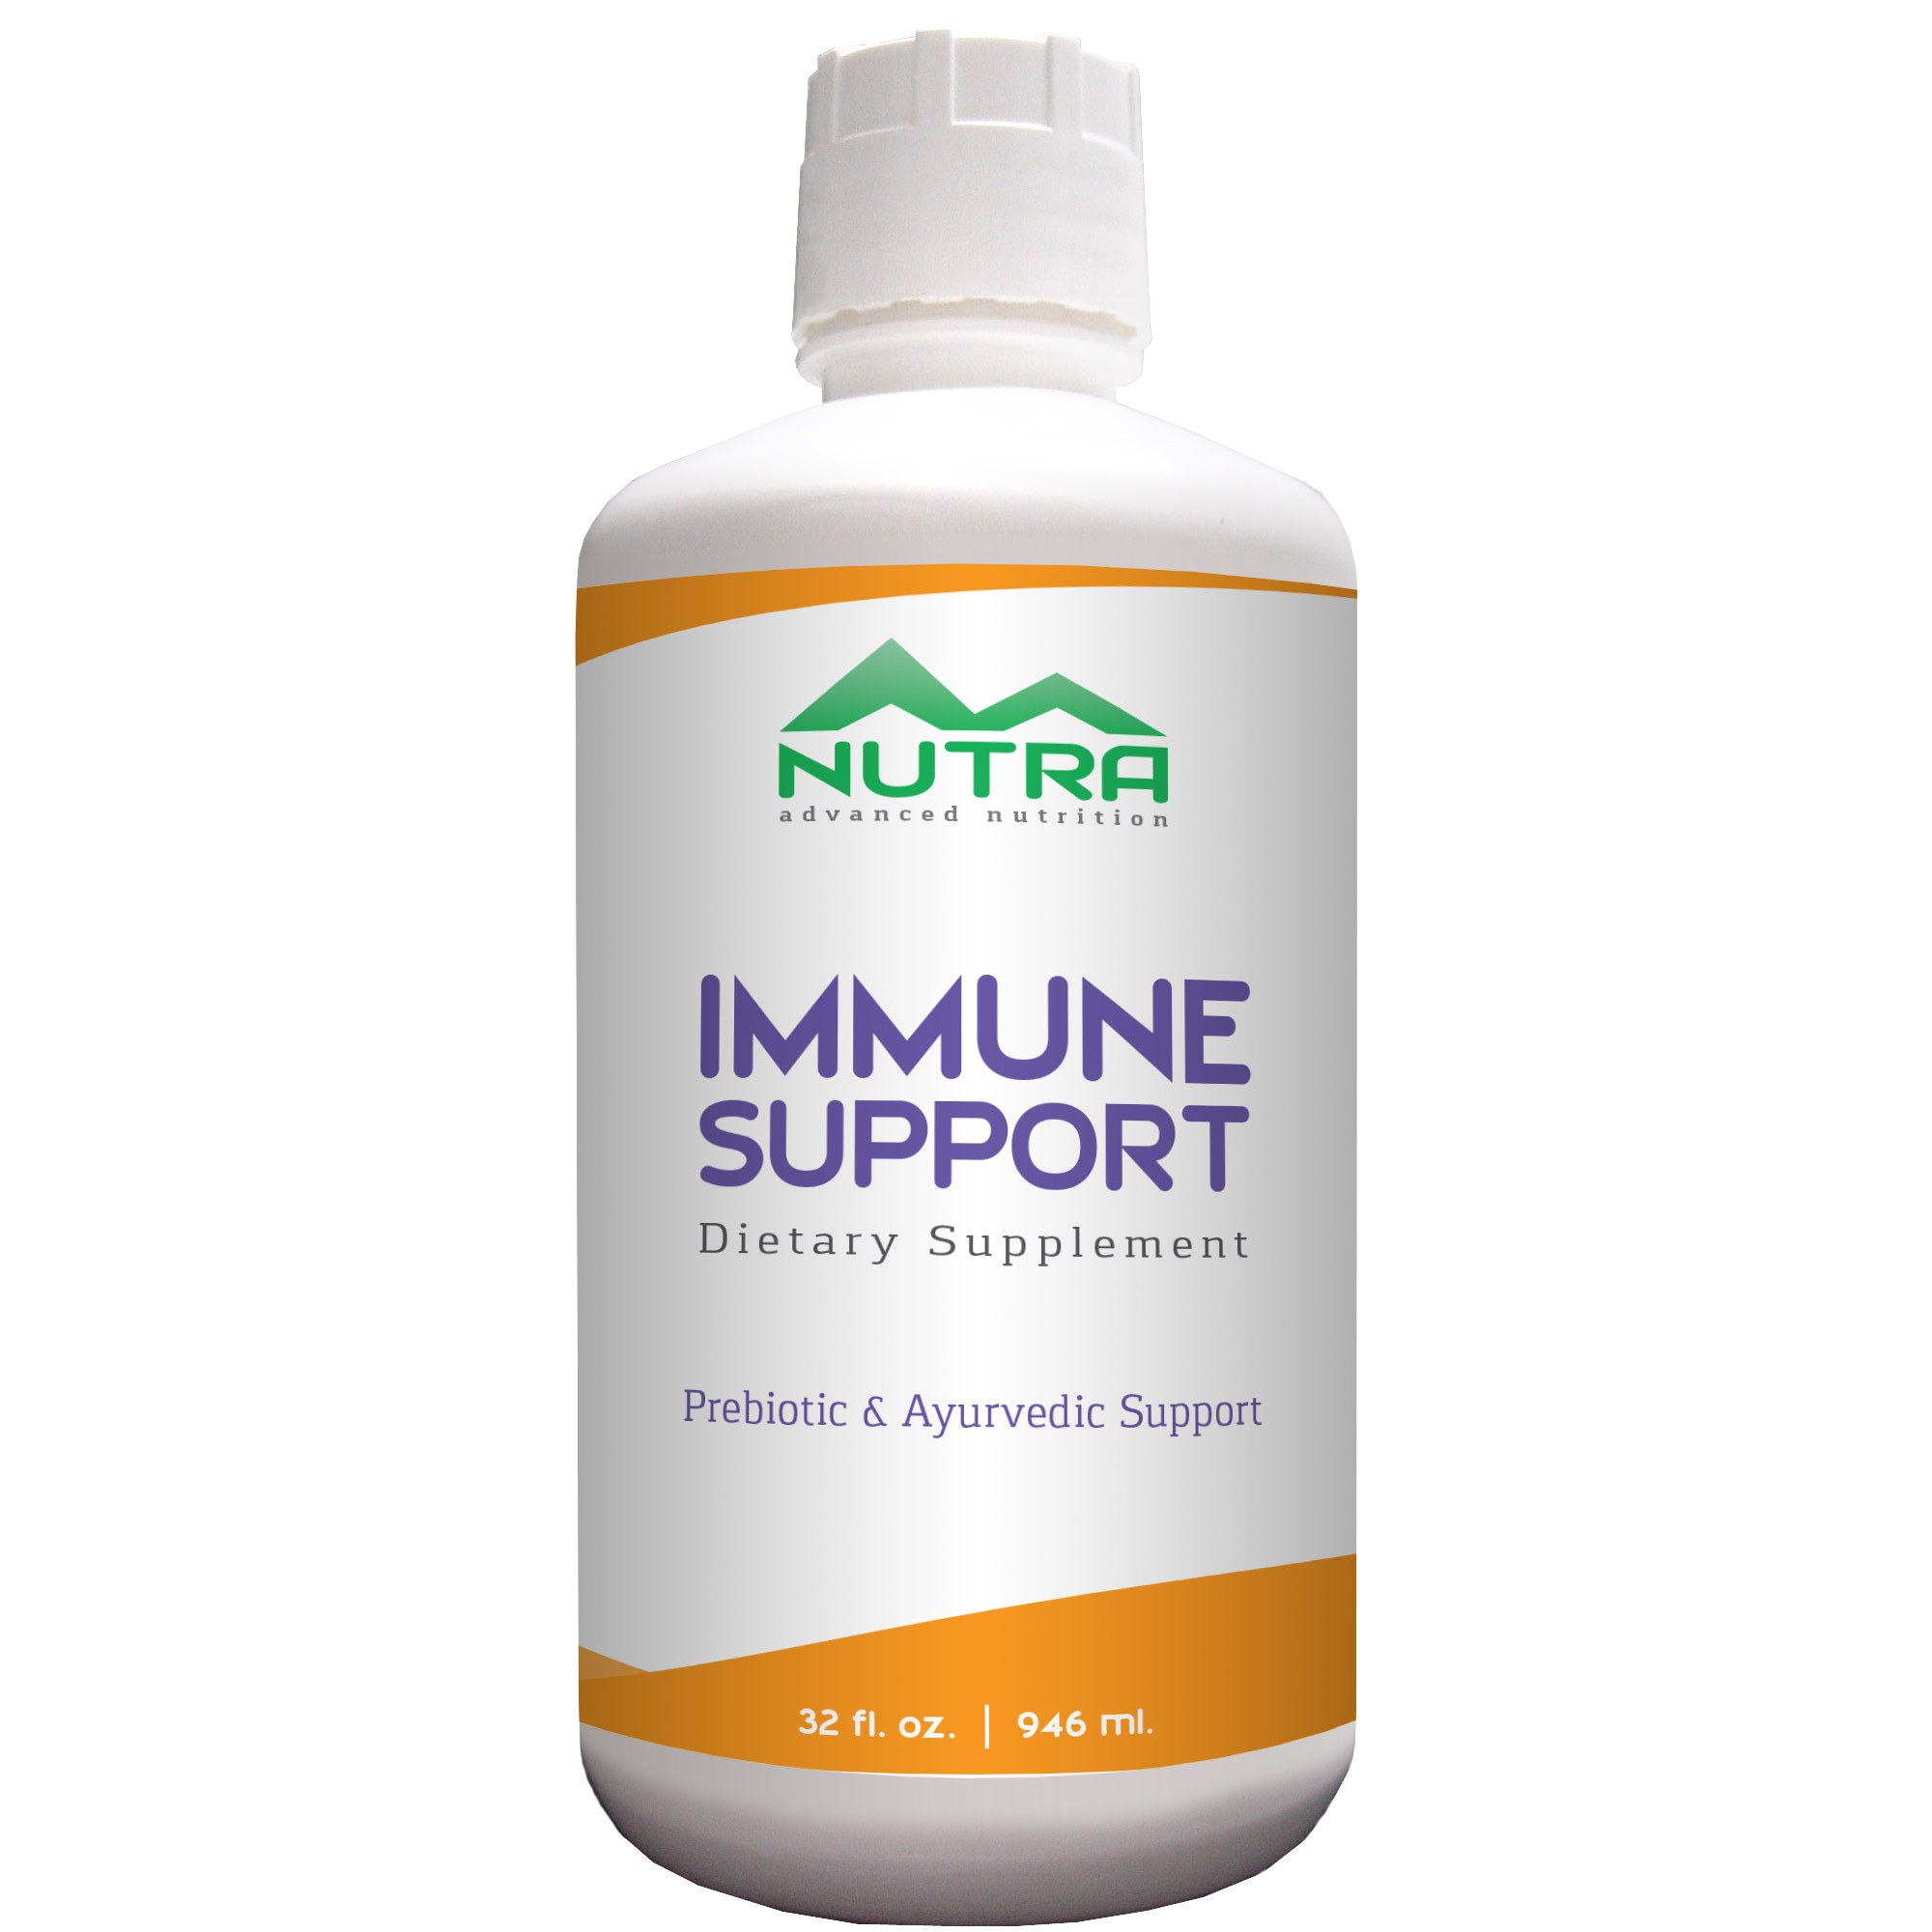 Private Label Immune Support Supplement Manufacturer